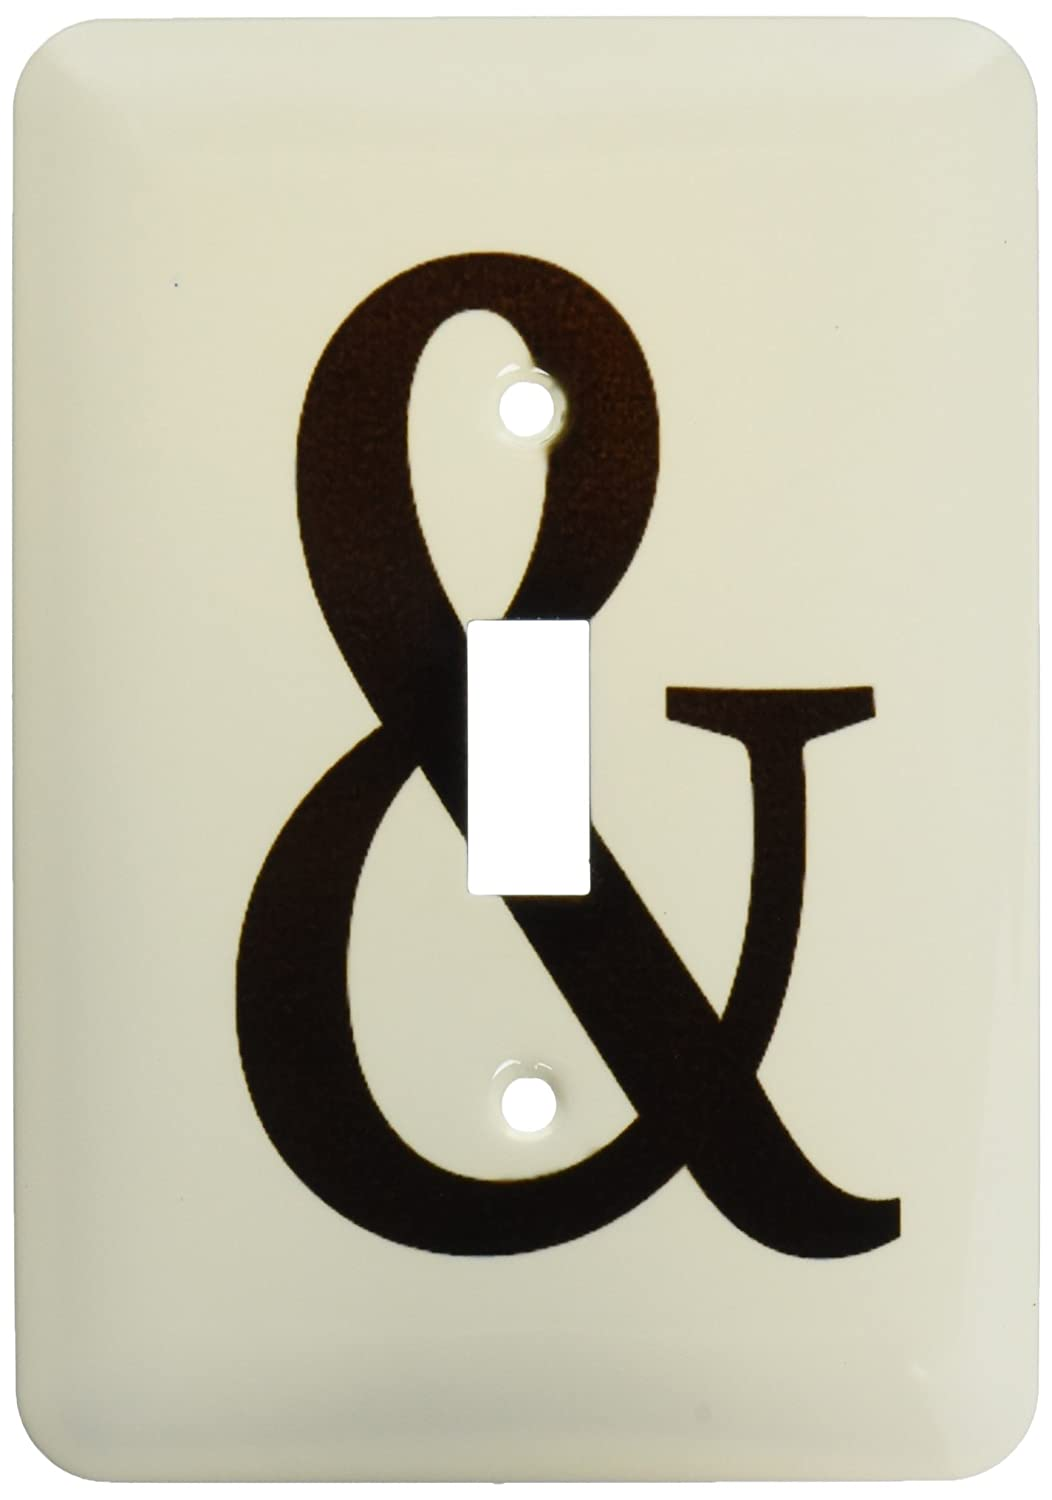 3dRose lsp/_151646/_1 Ampersand Stylish Black and Sign Cool Punctuation Marks Togetherness Symbol Together Single Toggle Switch